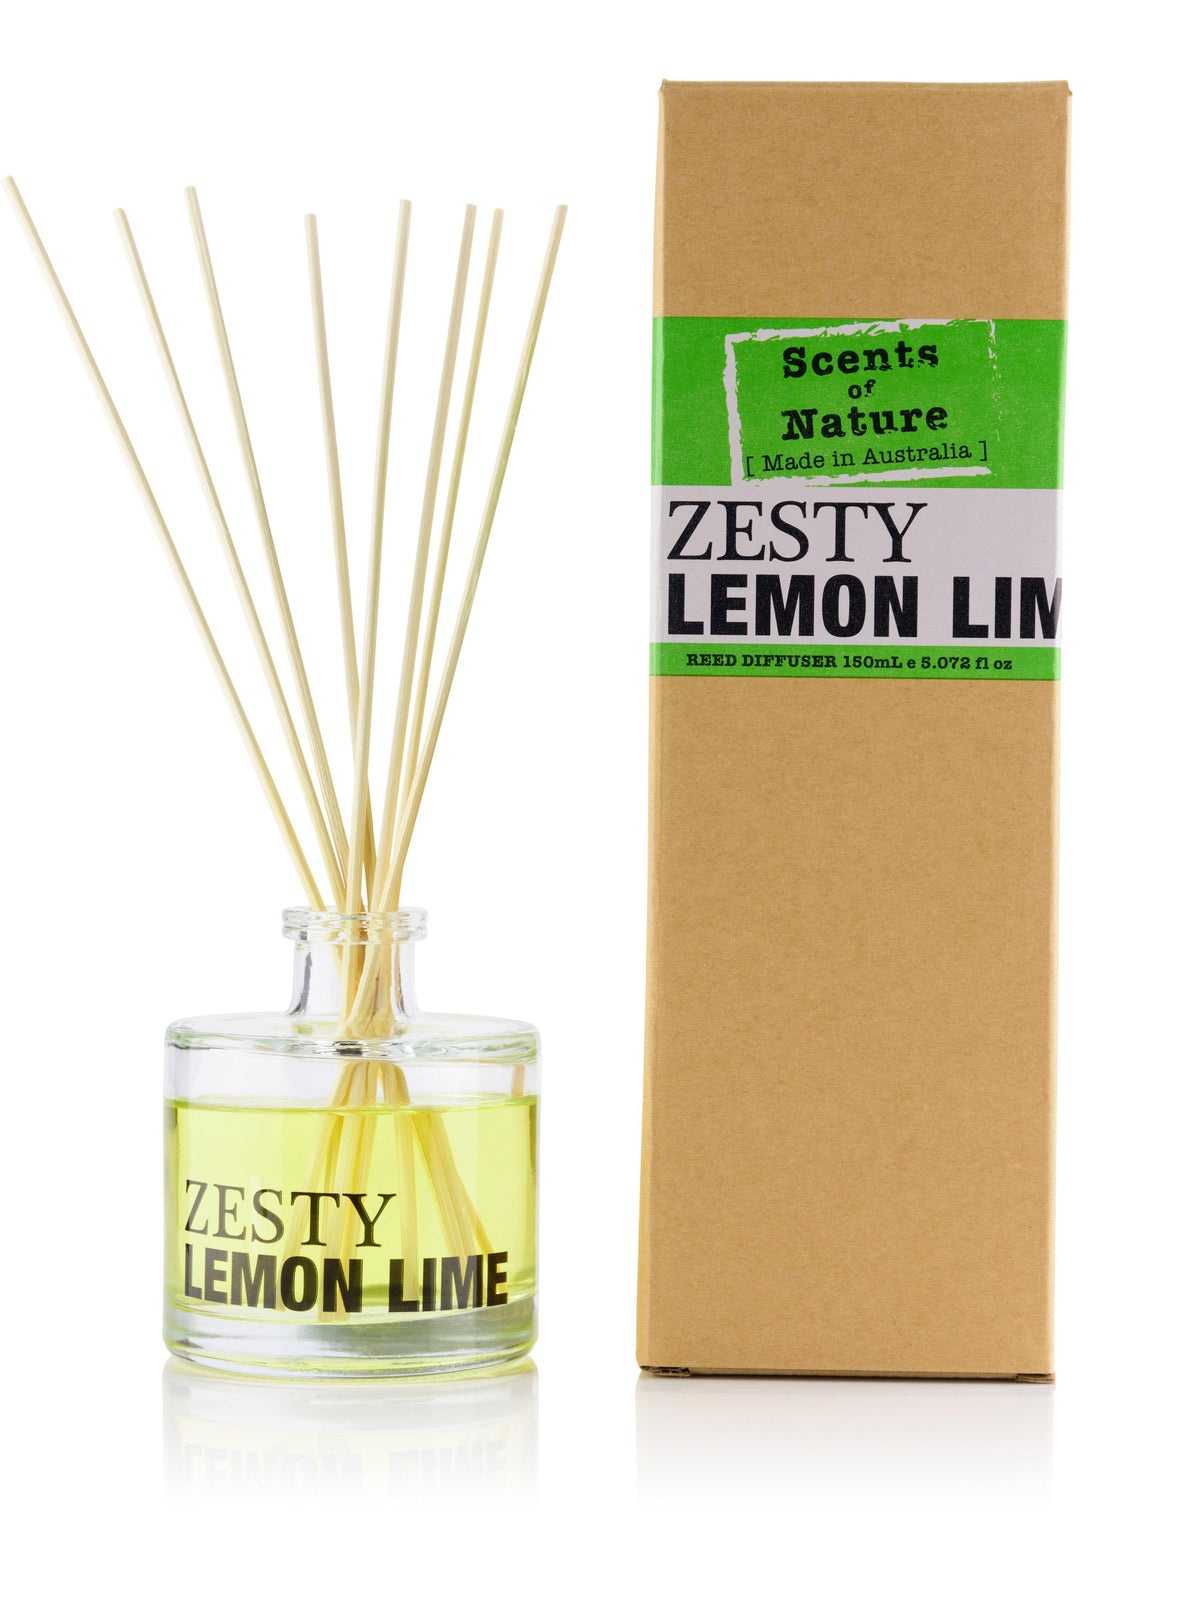 Zesty Lemon Lime Reed Diffuser 150mL